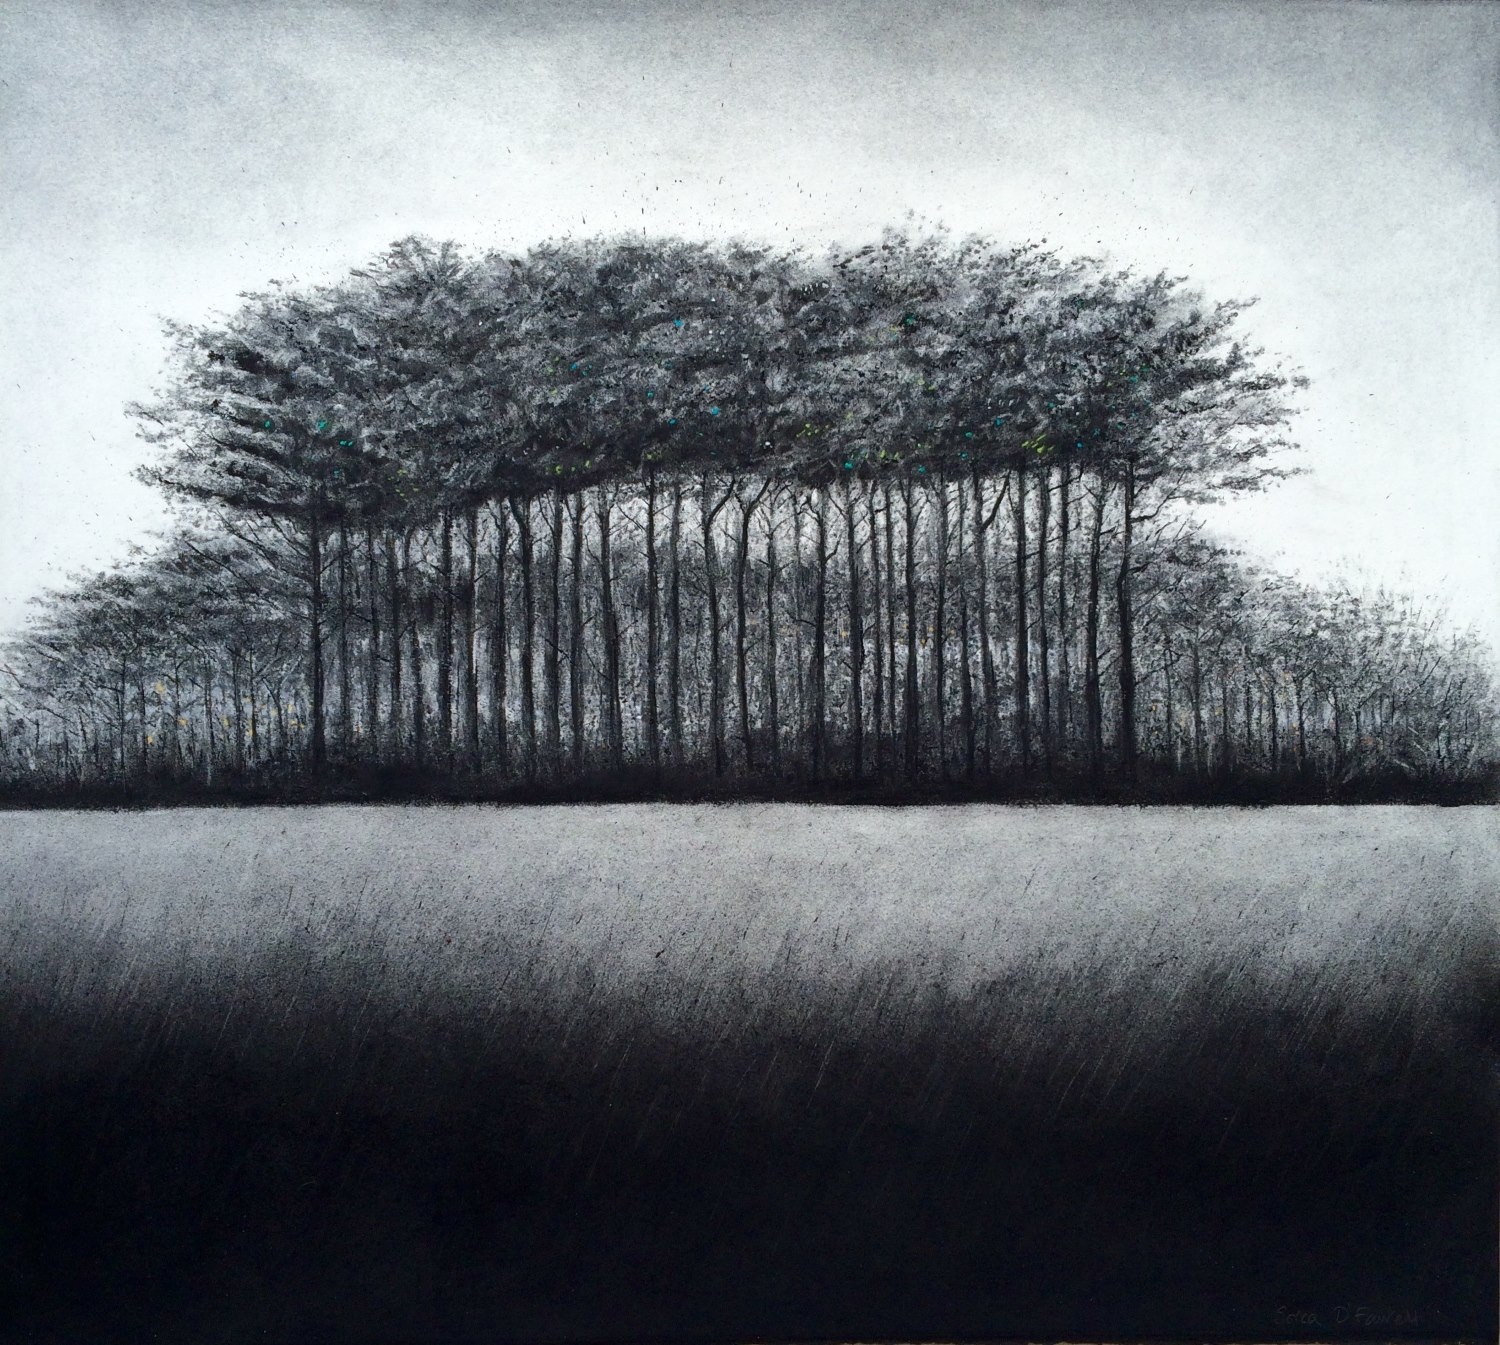 The Group charcoal & Indian ink on fabriano paper 56cm x 58cmby Sorca O'Farrell